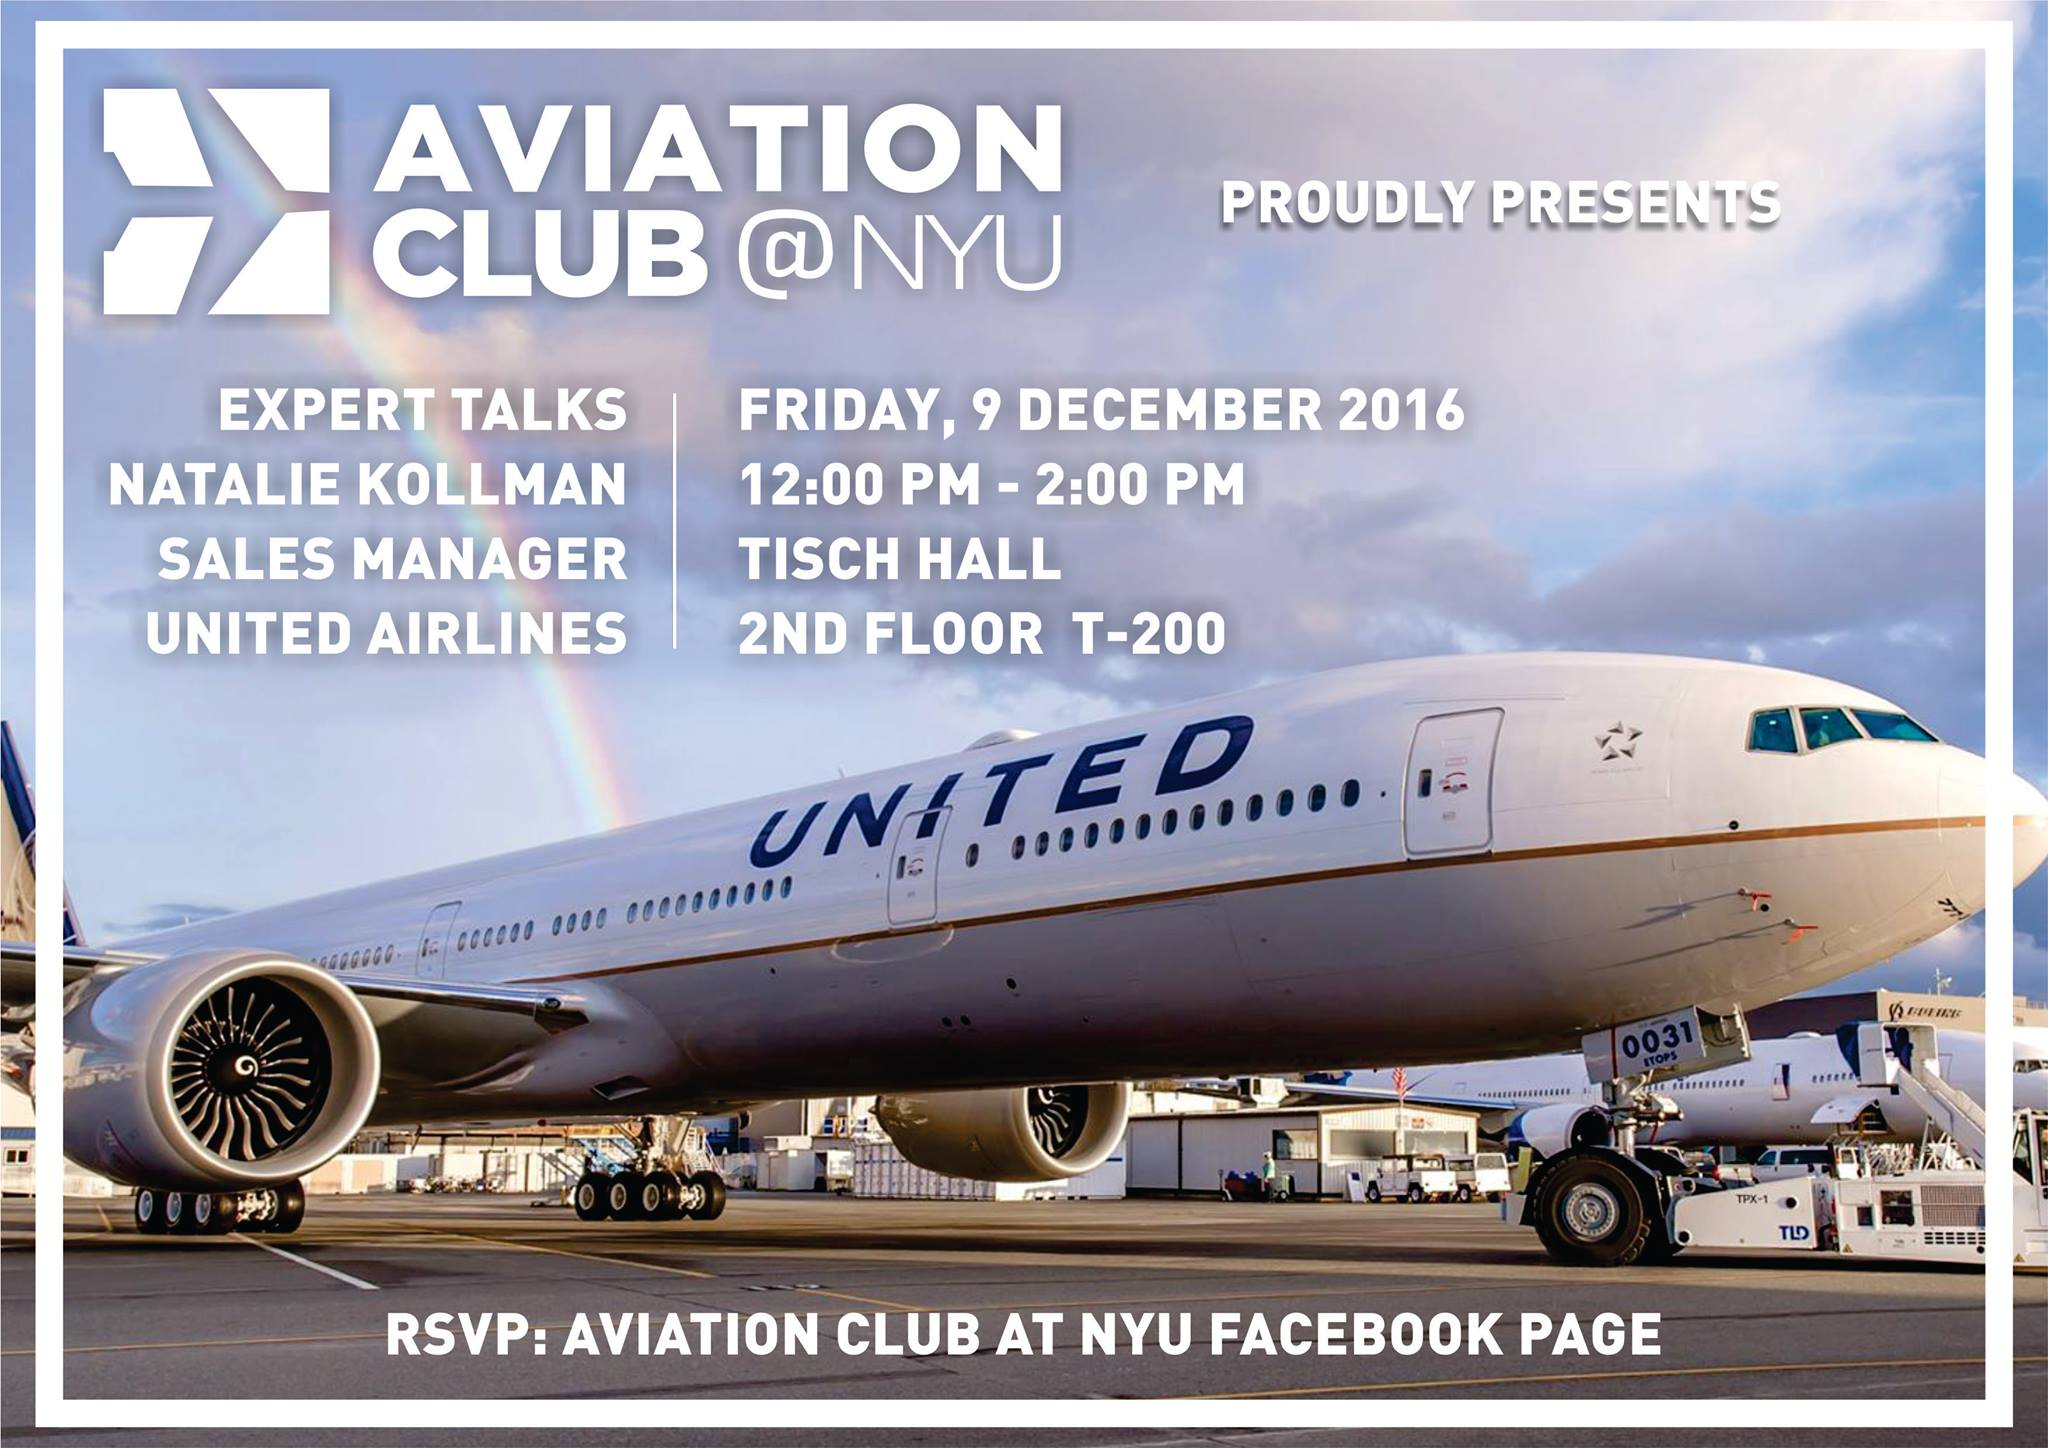 Talk with Natalie Kollman, United Airlines Sales Manager – Aviation